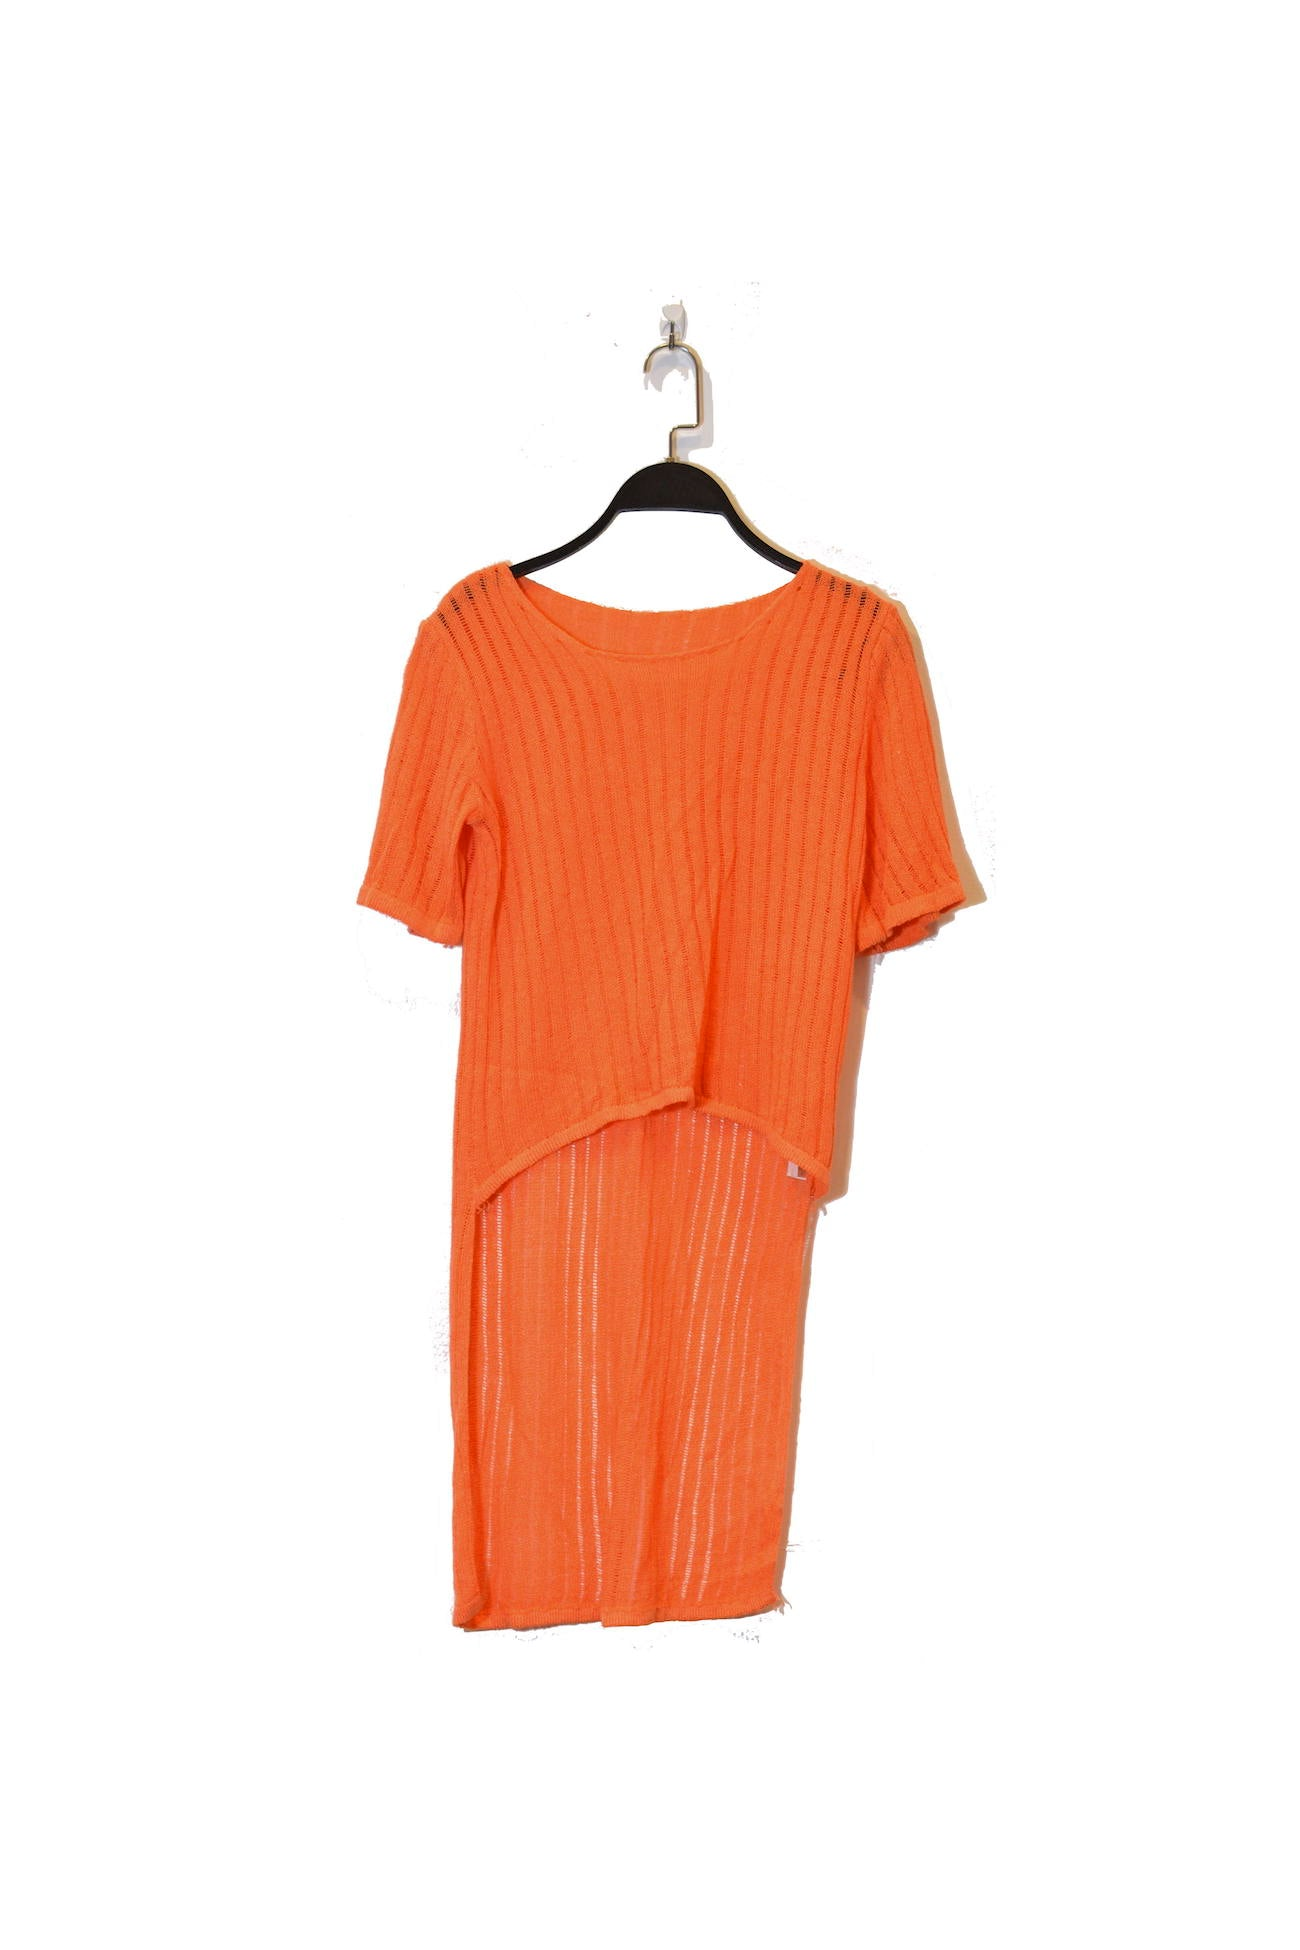 Orange High Low Semi-Sheer Top With Short Sleeves and round neckline